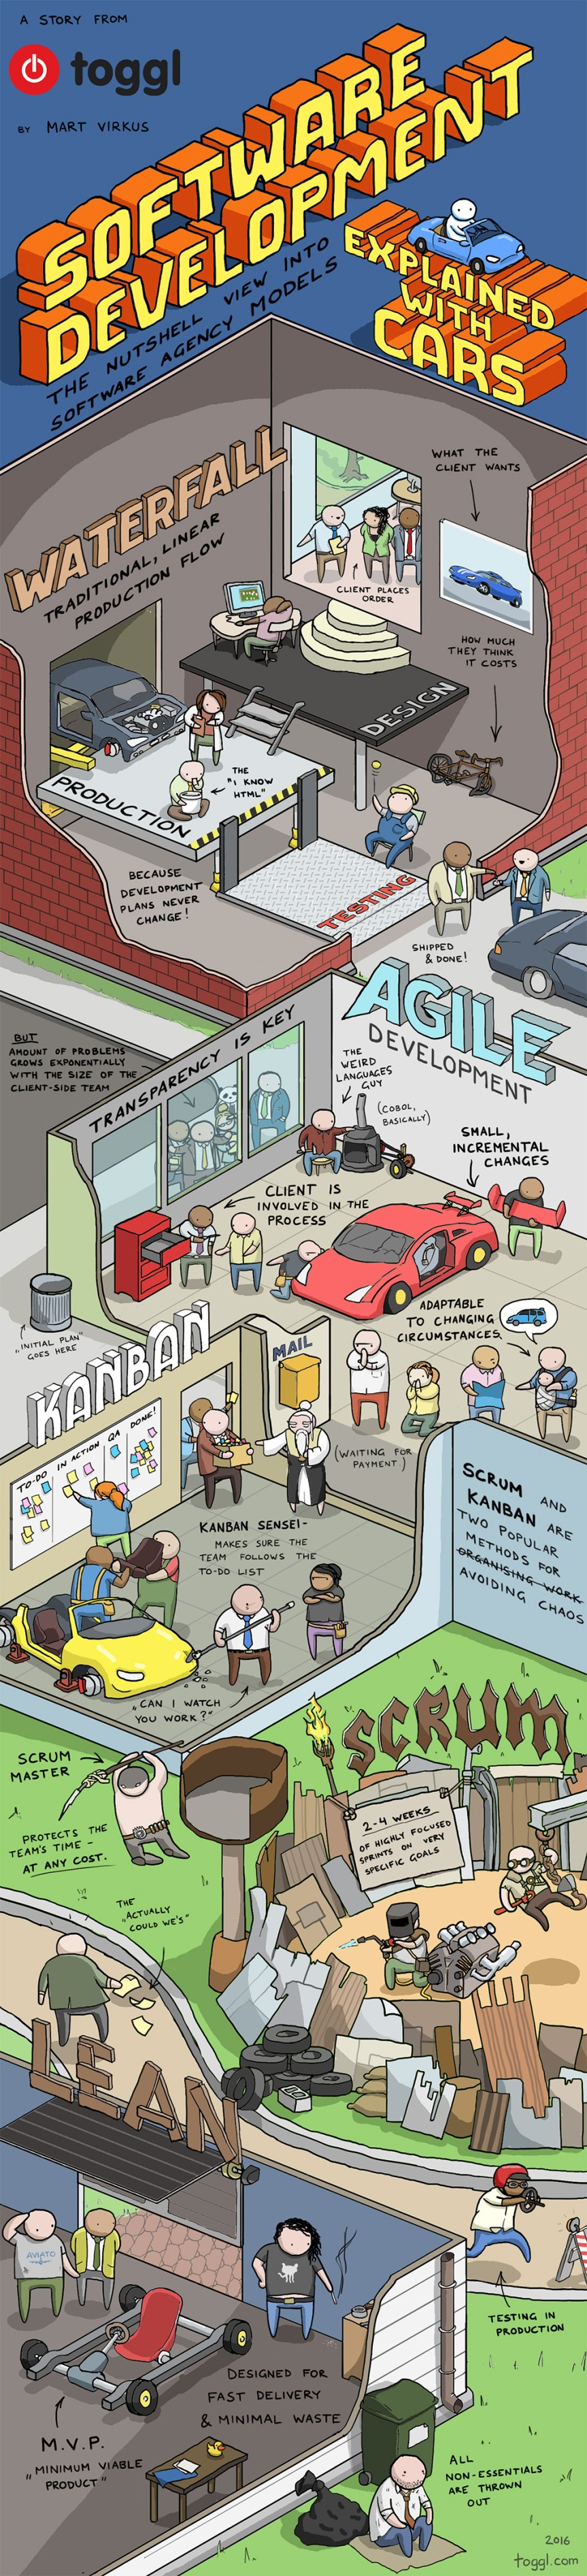 Software Development explained with cars!